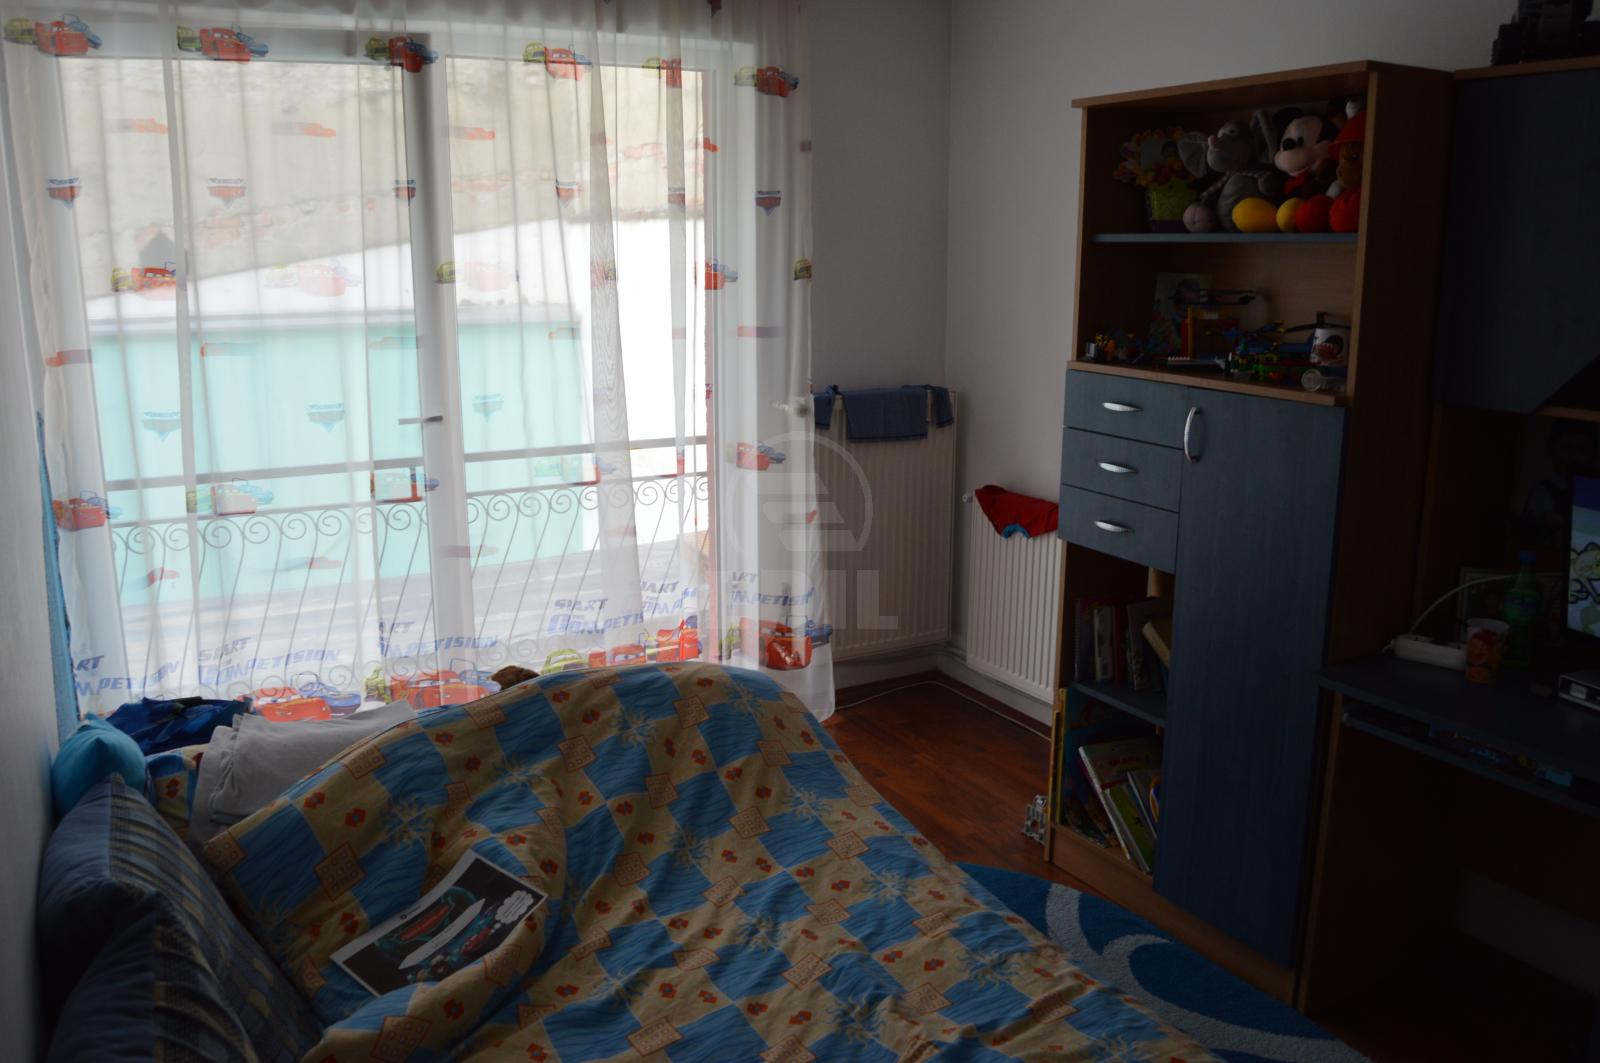 House for sale 4 rooms, CACJ274664-7